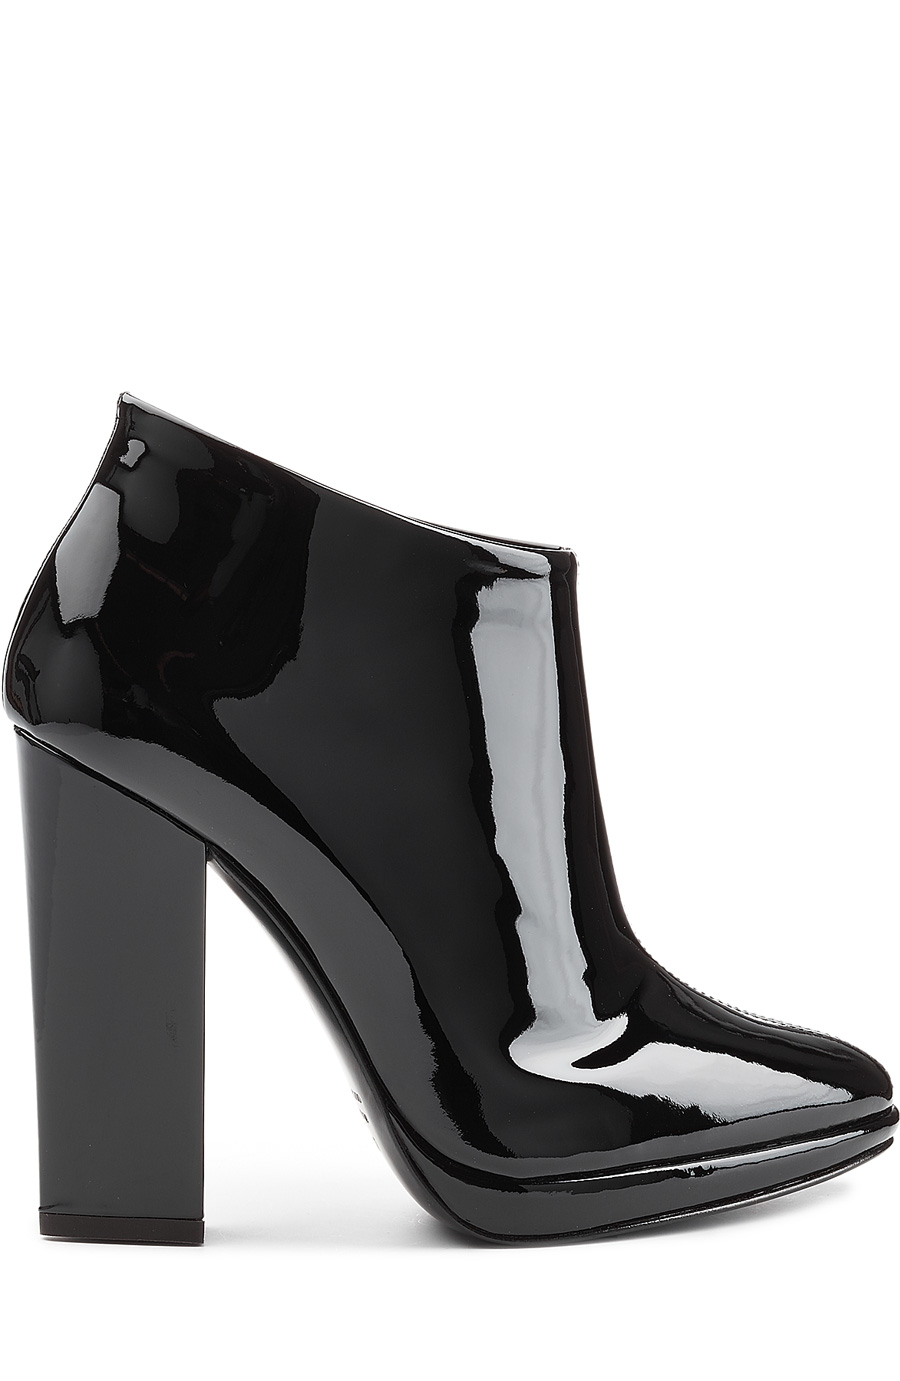 Giuseppe Zanotti Patent Leather Ankle Boots TrRKDfhO